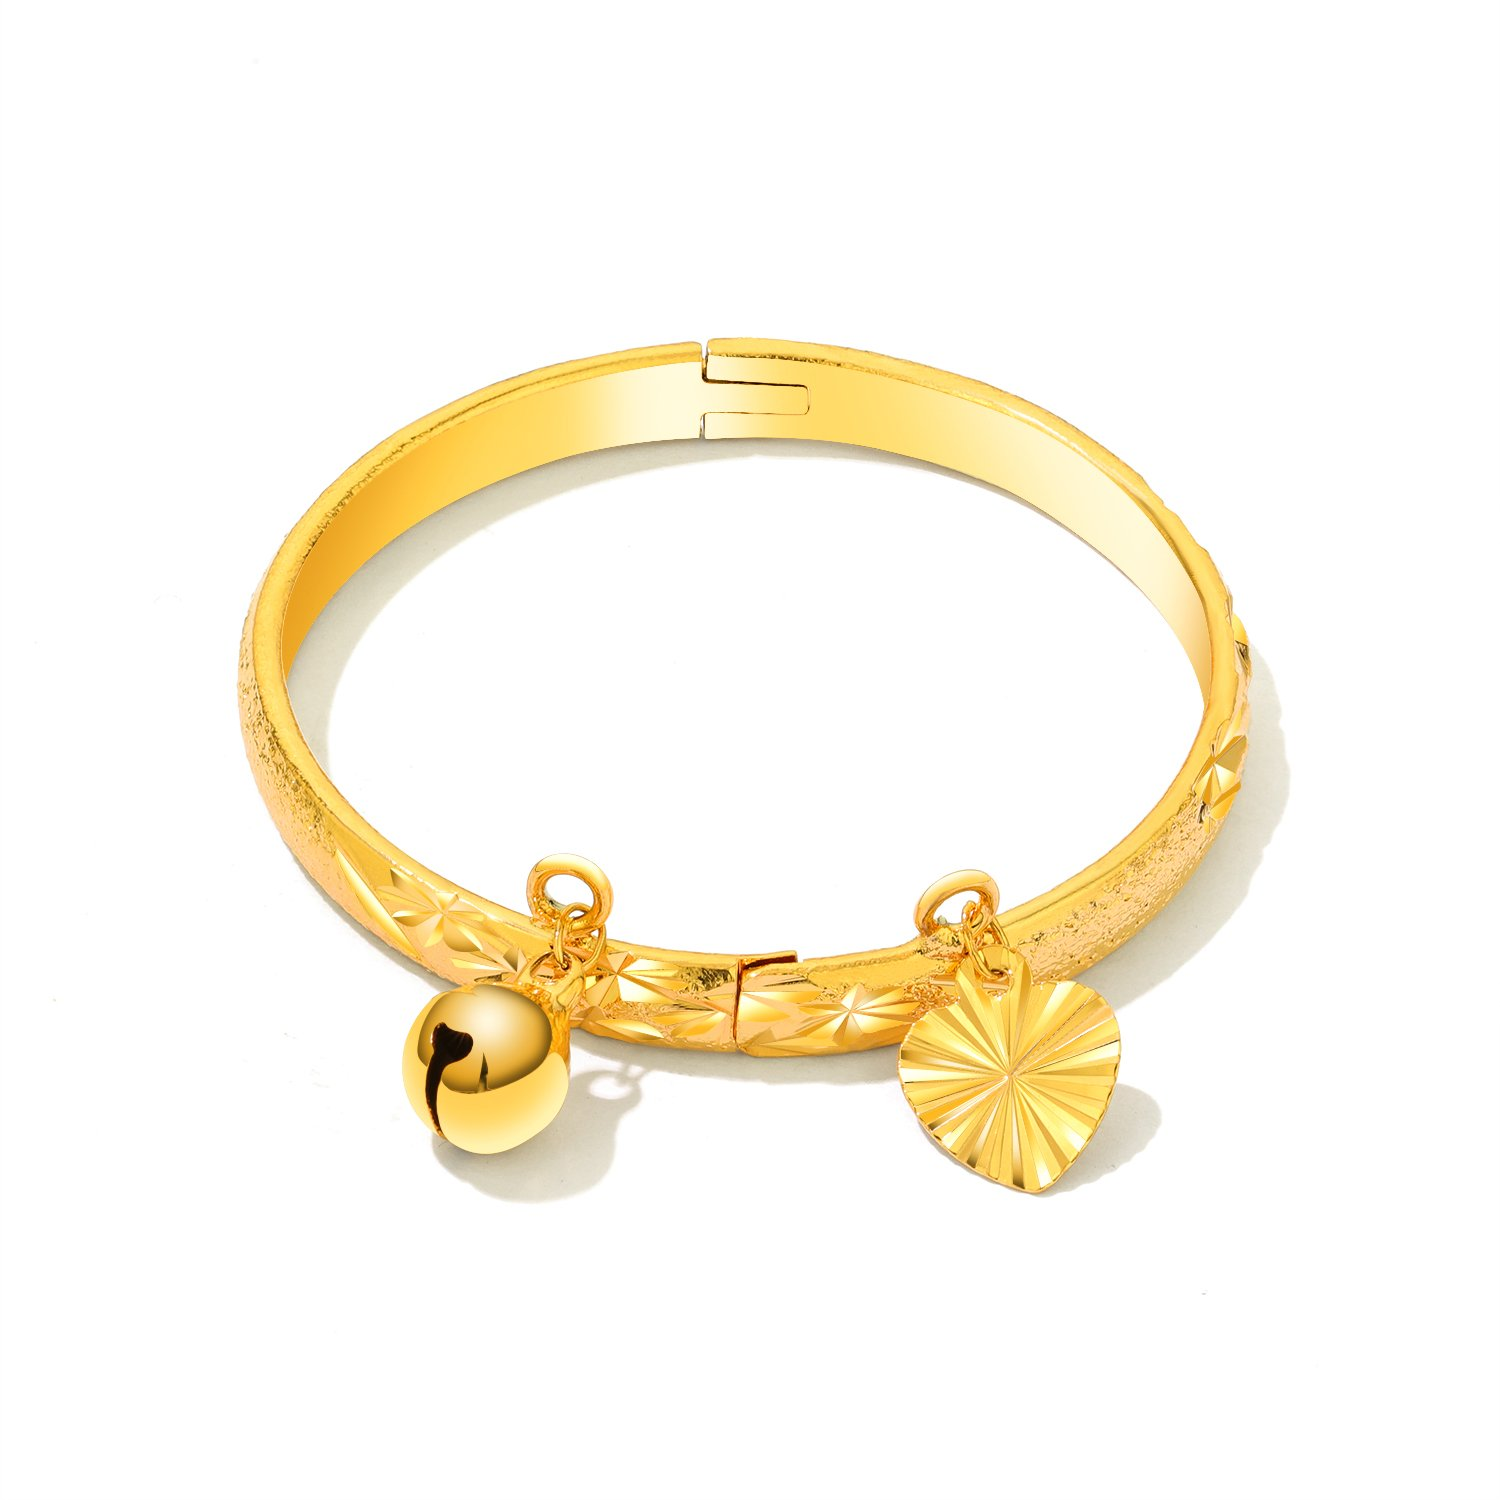 8f606ff60f406 OPK Jewelry Fashion Gold Plated Children's Bangle Heart and Bell Pendant  Cuff Bracelets